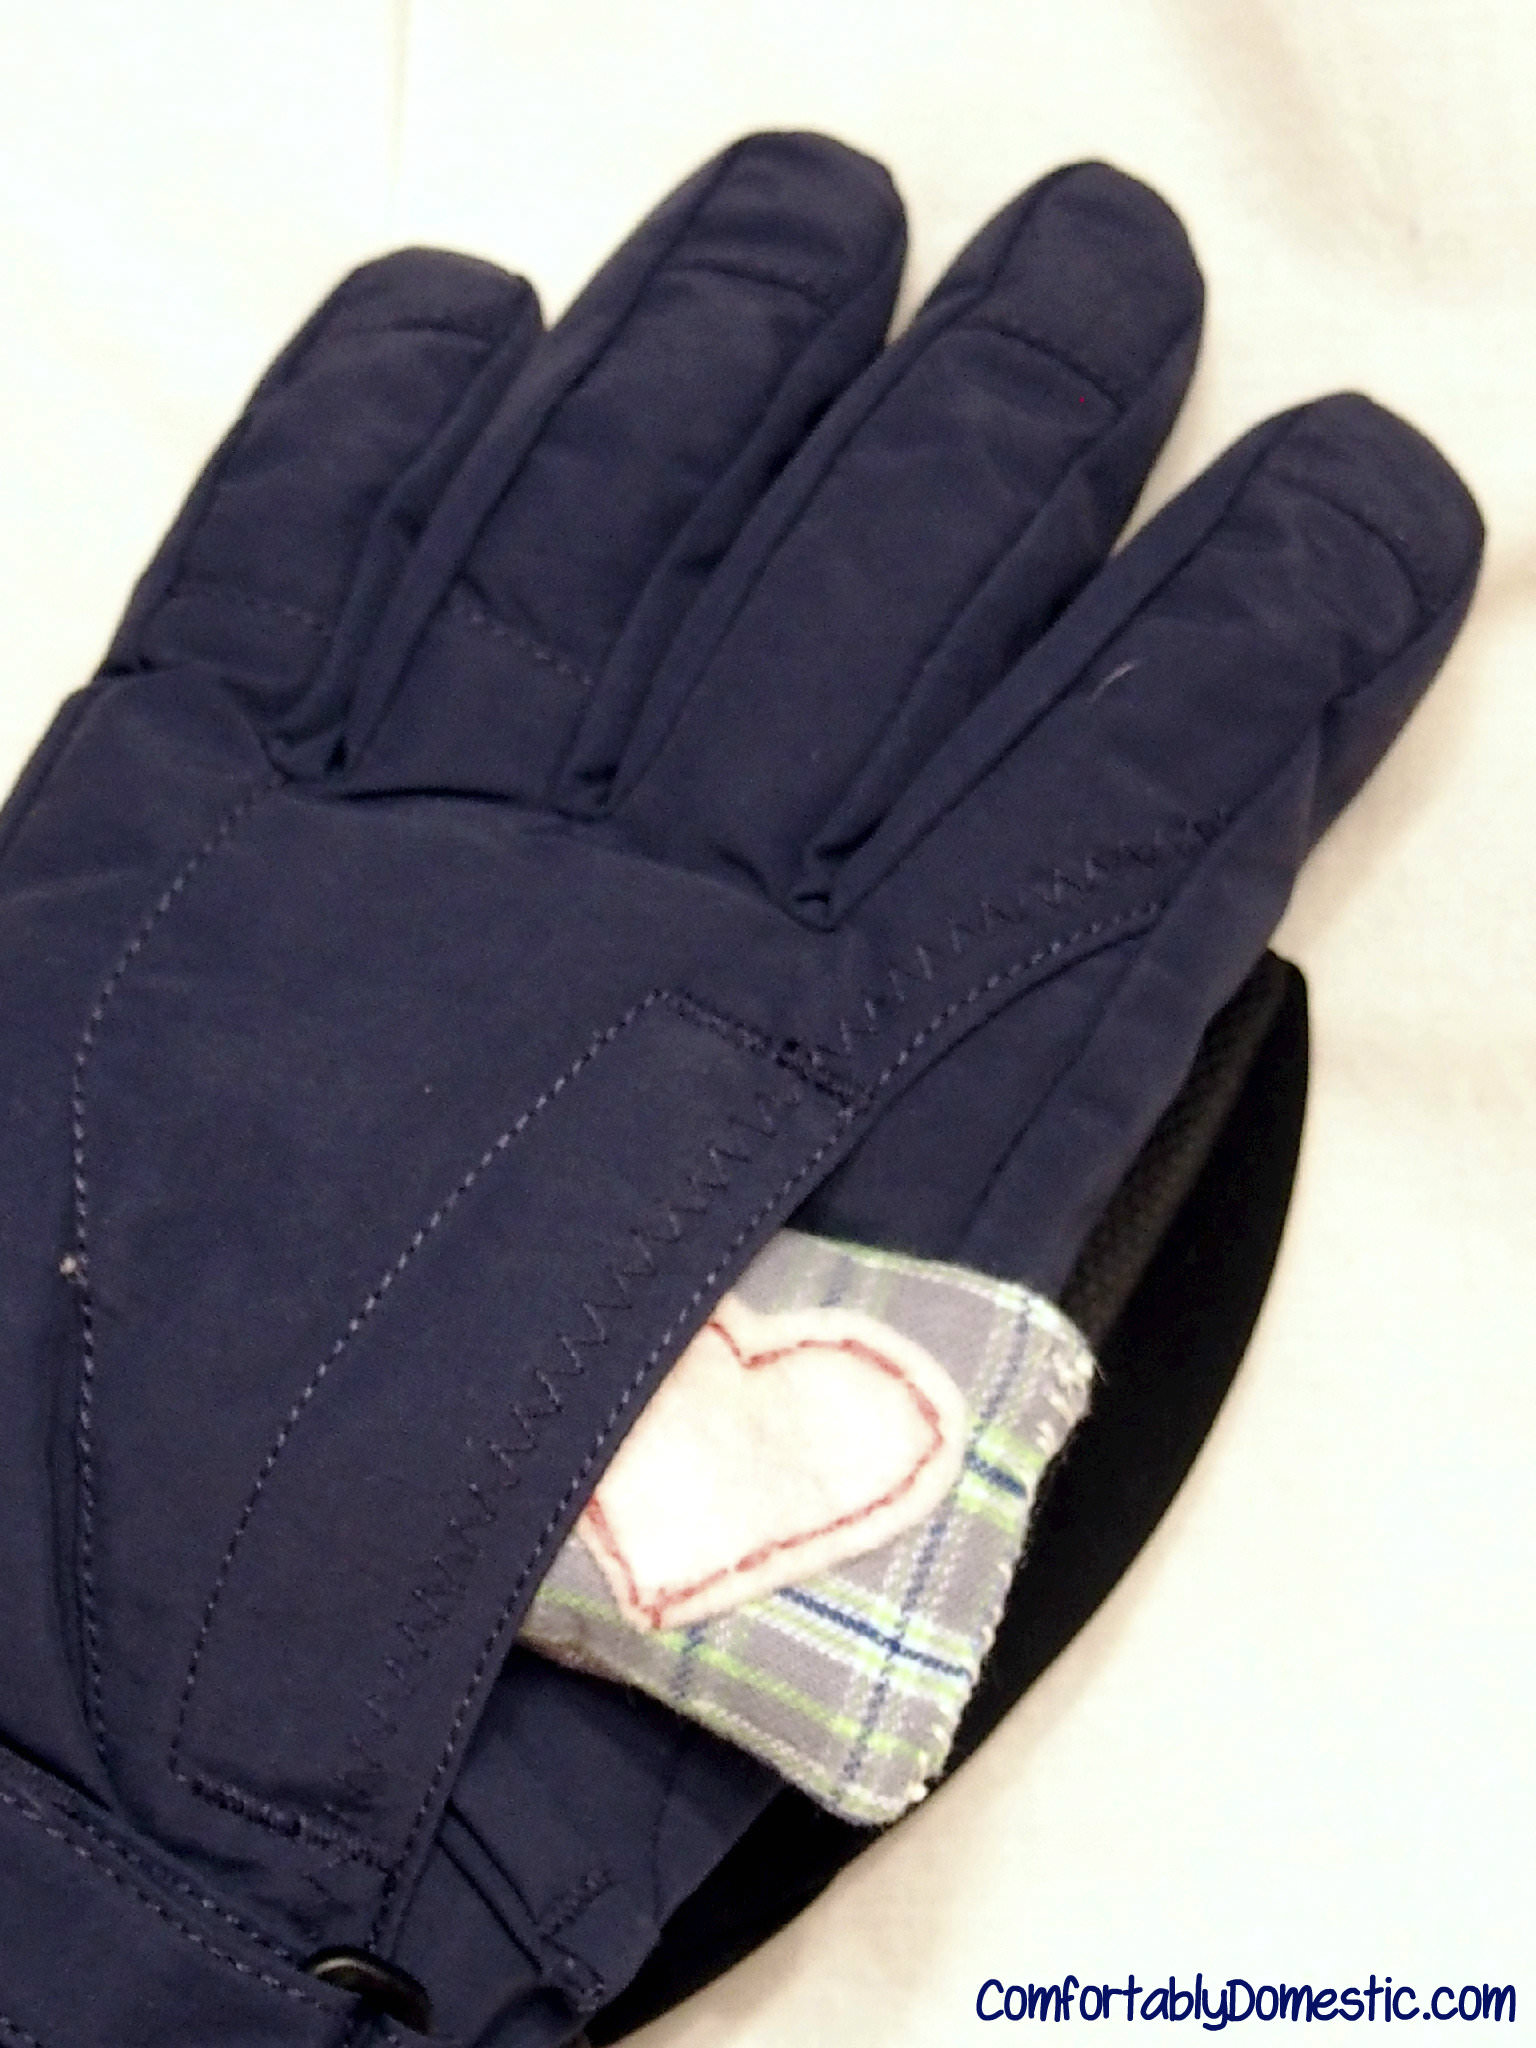 DIY Microwavable Hand Warmers - reusable and inexpensive to make! | ComfortablyDomestic.com